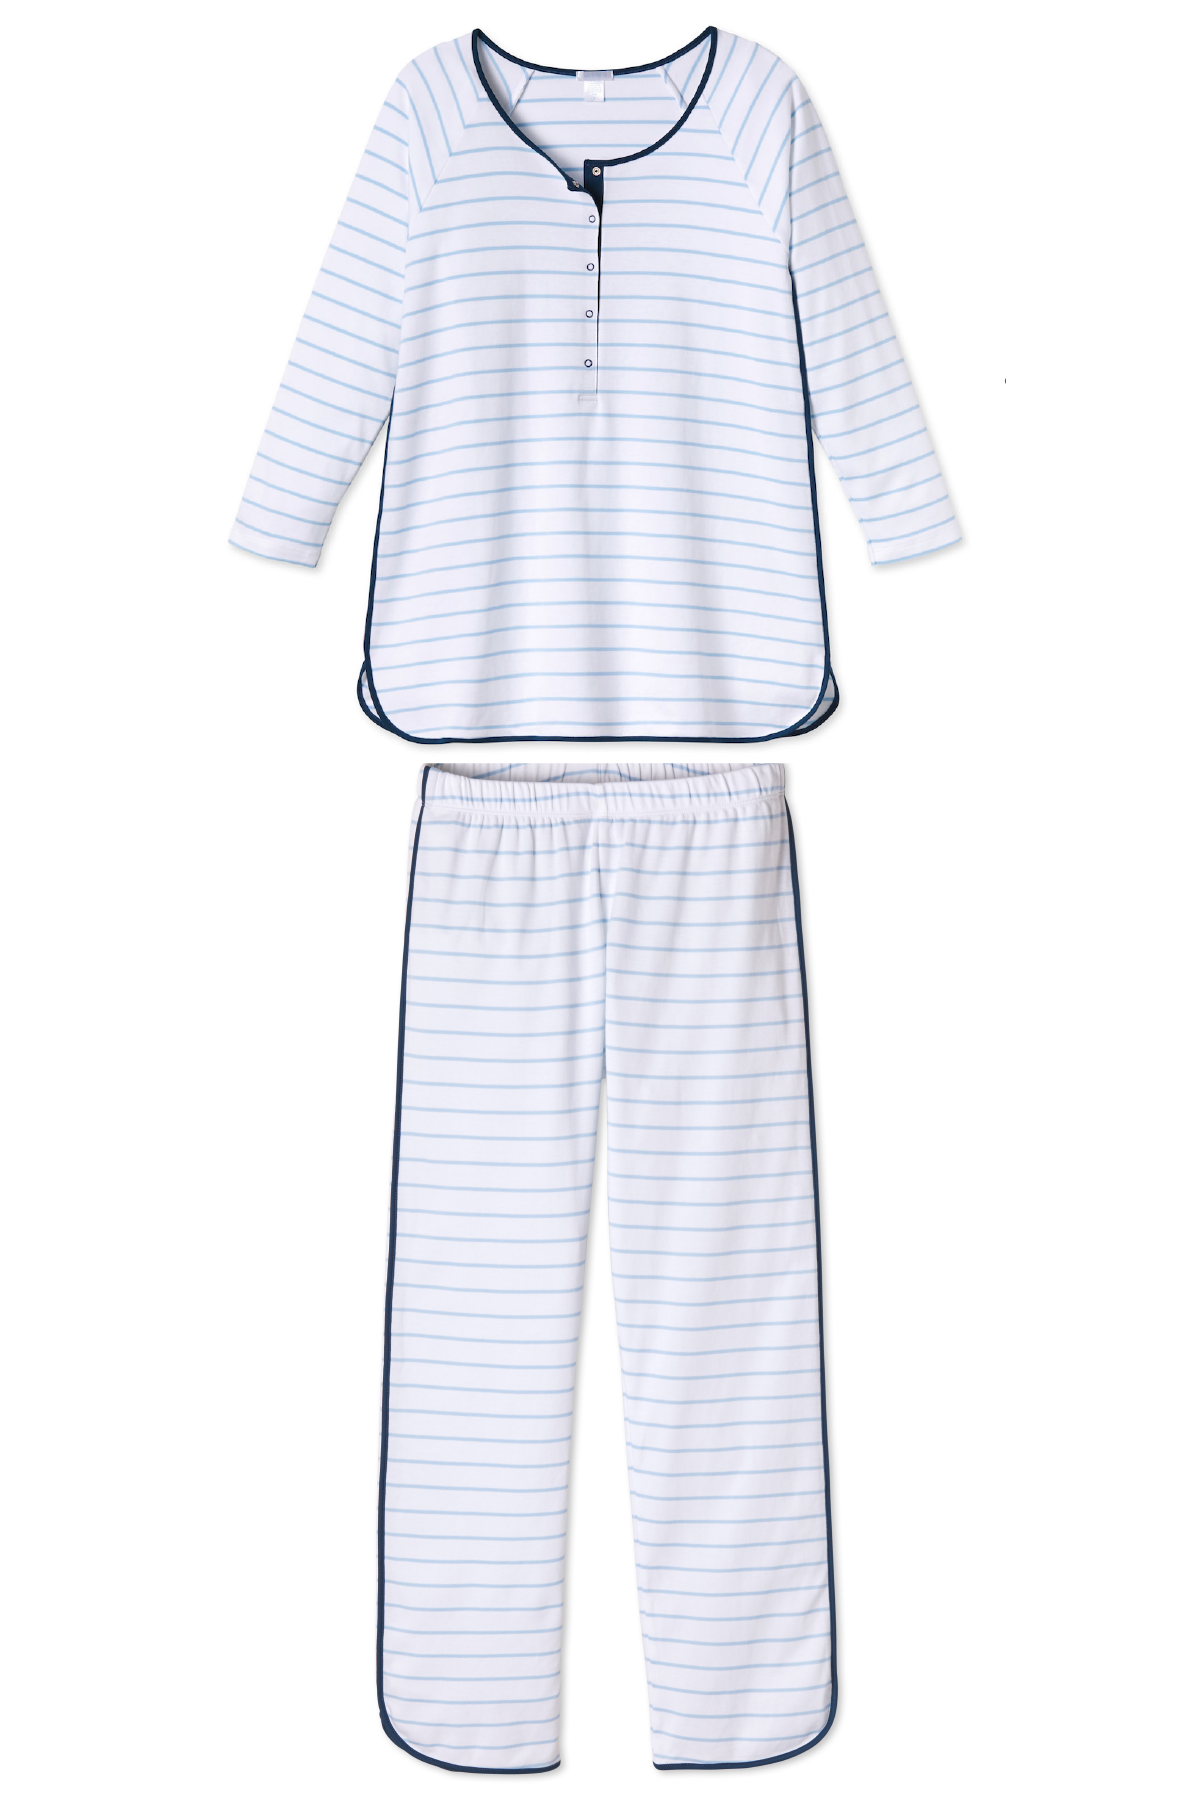 Pima Maternity Long-Long Set in Marine